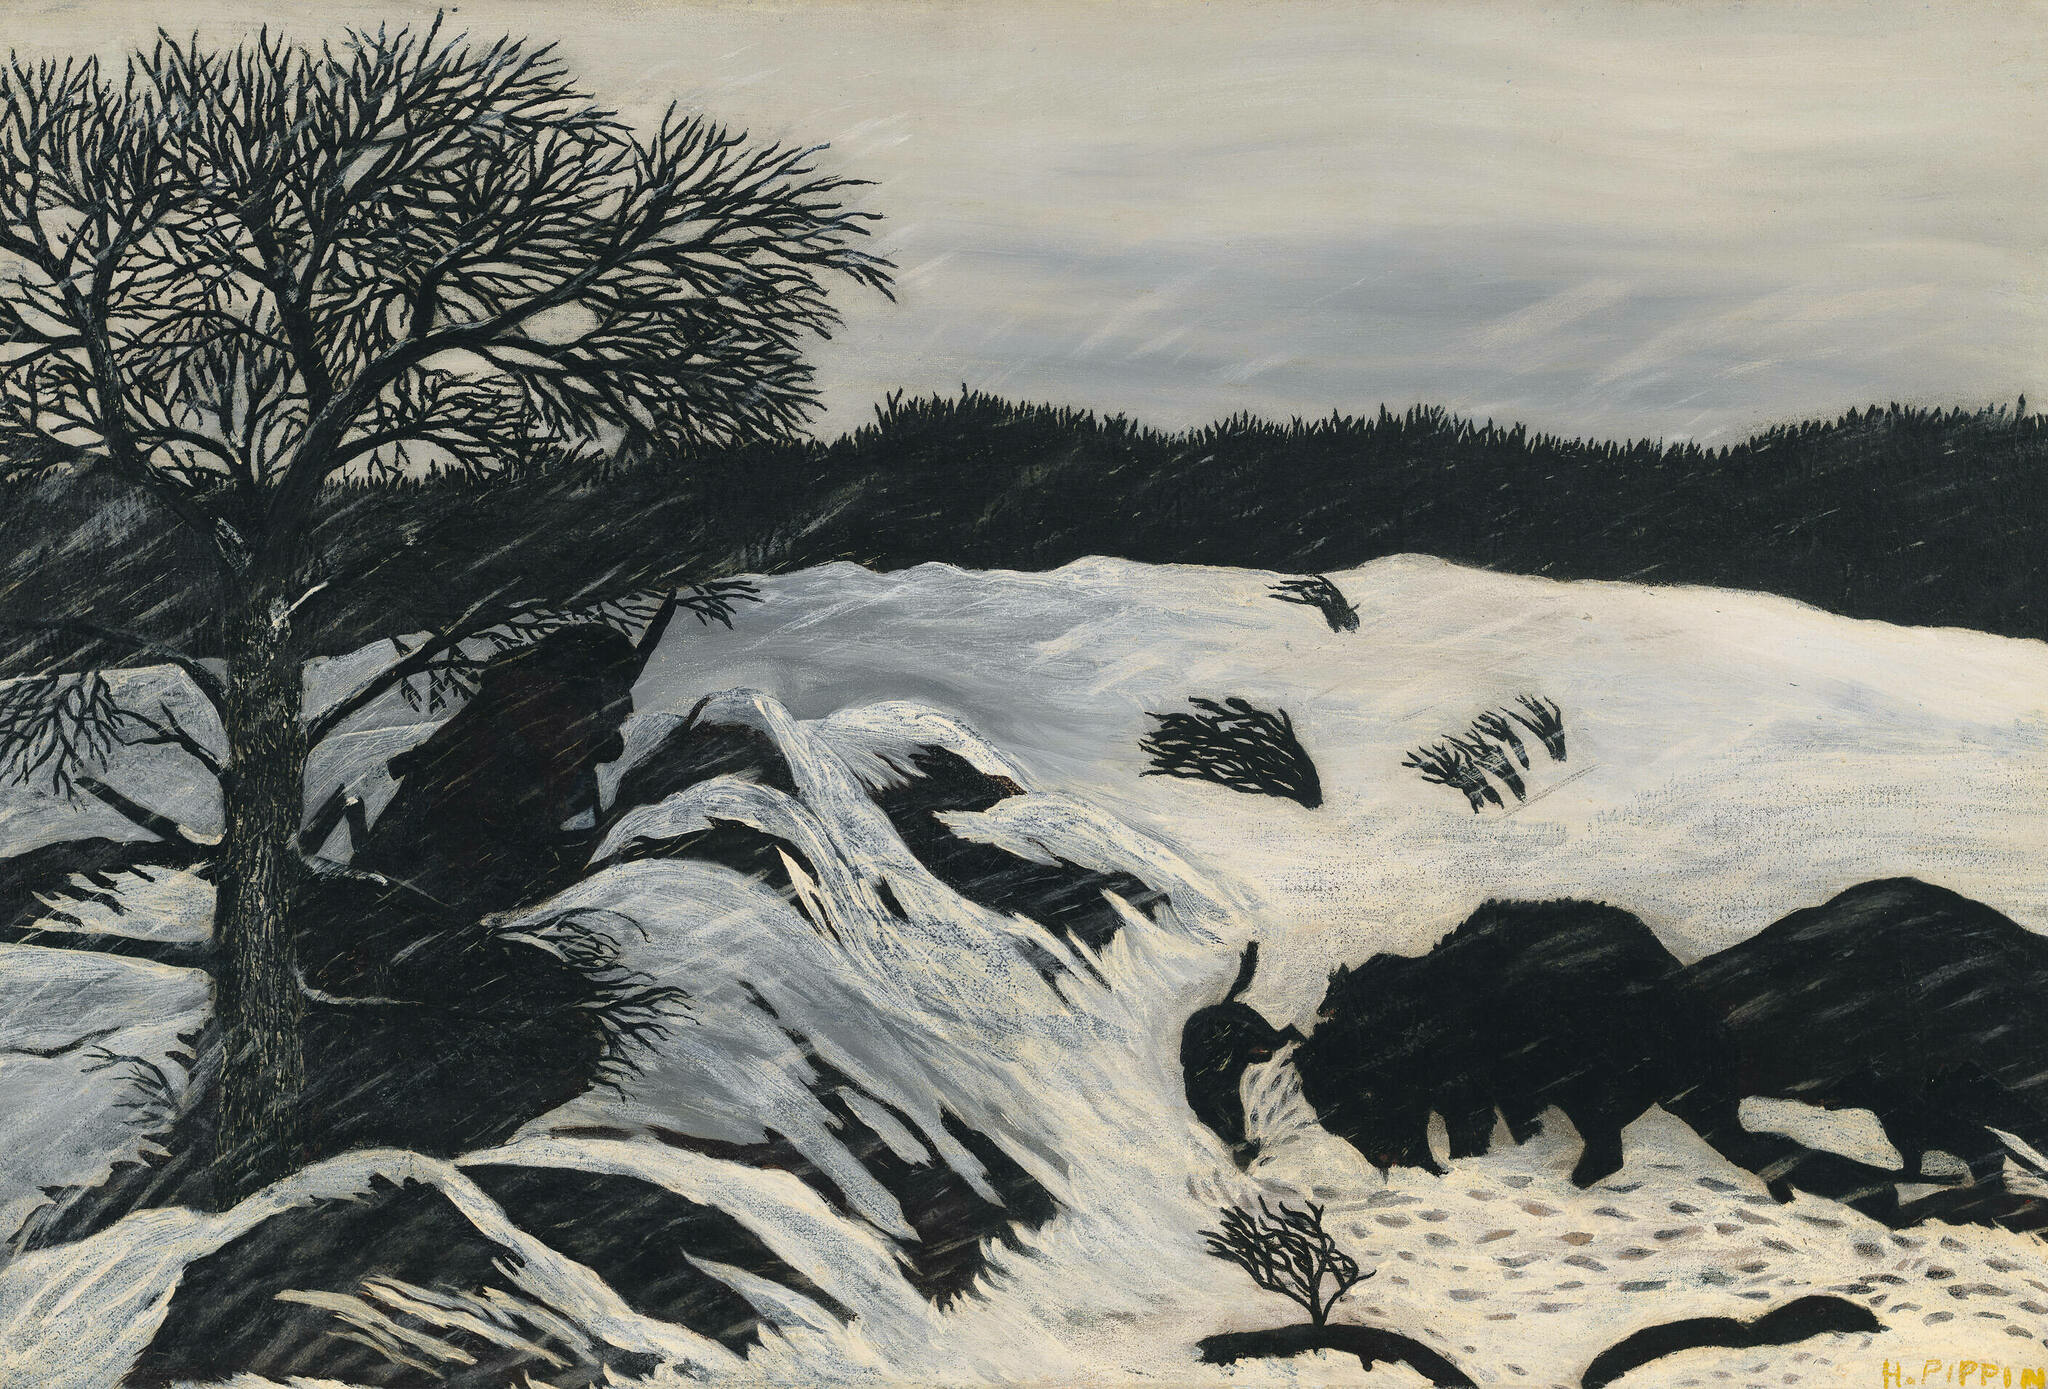 In a windy, snow-covered landscape, silhouettes of a hunter and buffalo appear among bare trees and large rocks.